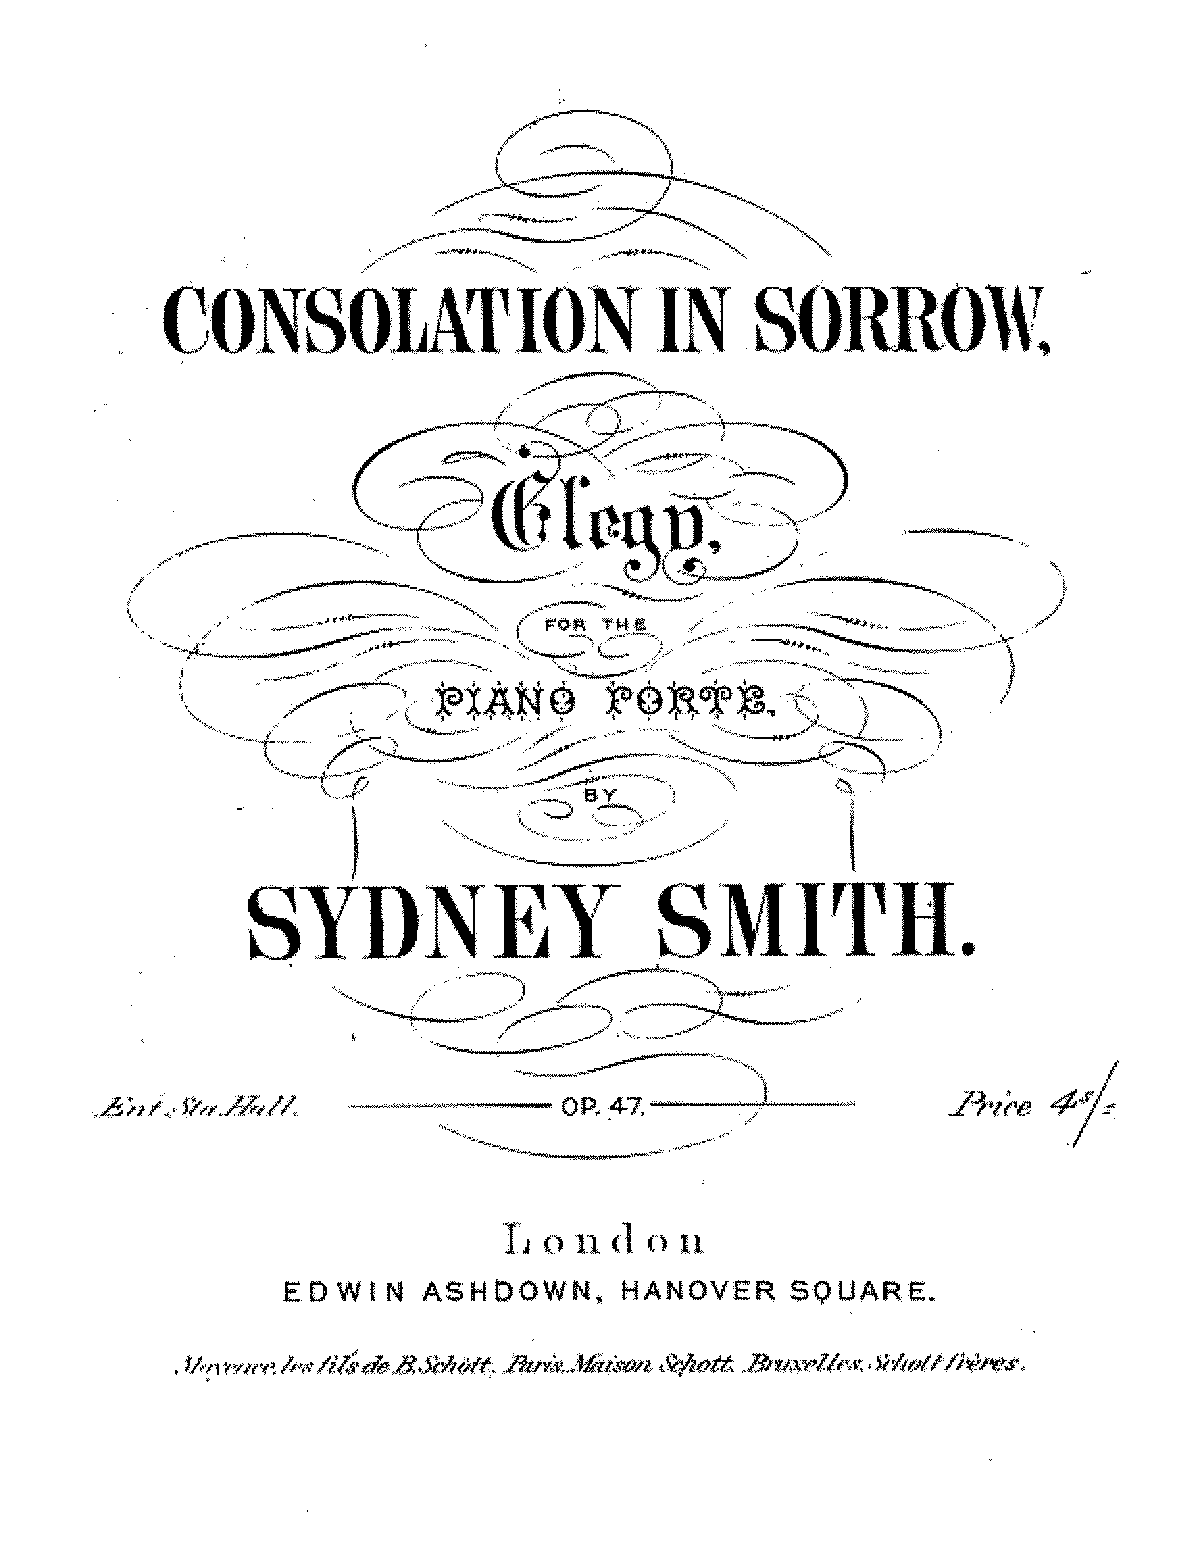 Smith, Sydney op047 consolation in sorrow.pdf